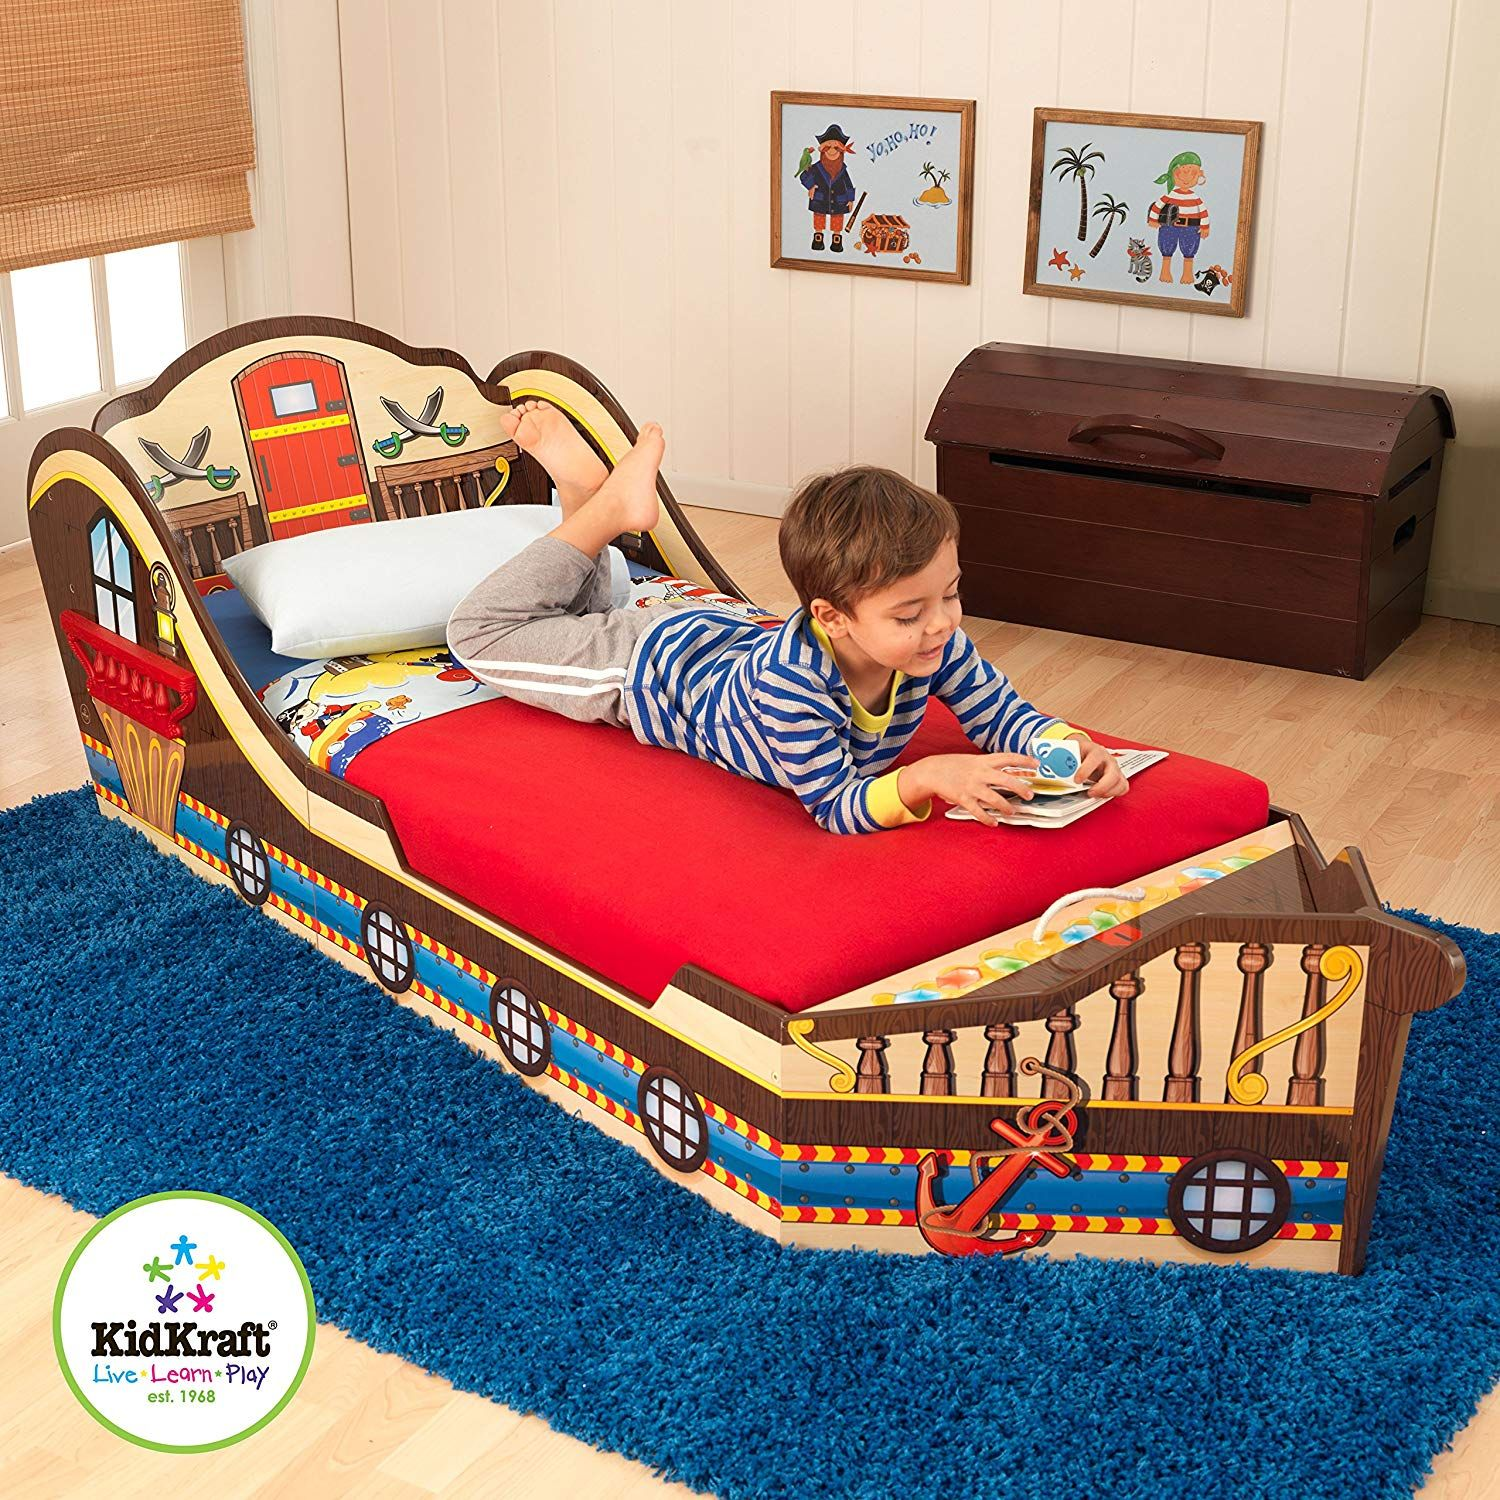 Kidkraft Toddler Pirate Bed Shiver Me Timbers Our Pirate Toddler Bed Helps Make The Transition From A Crib To An Adult Bed In 2020 Kleinkinderbett Coole Kinderbetten